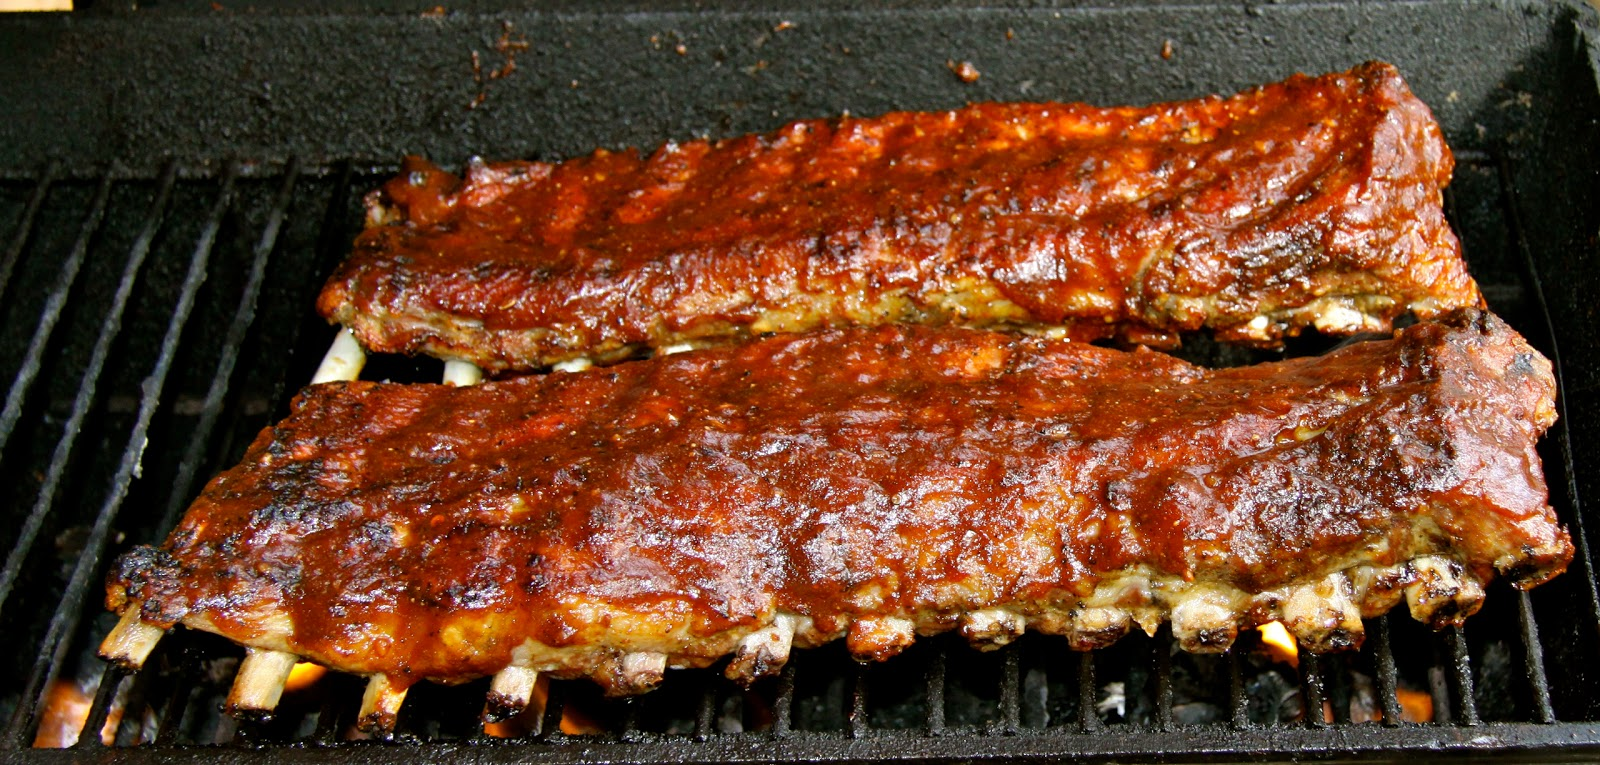 Braised Then Grilled Baby Back Ribs